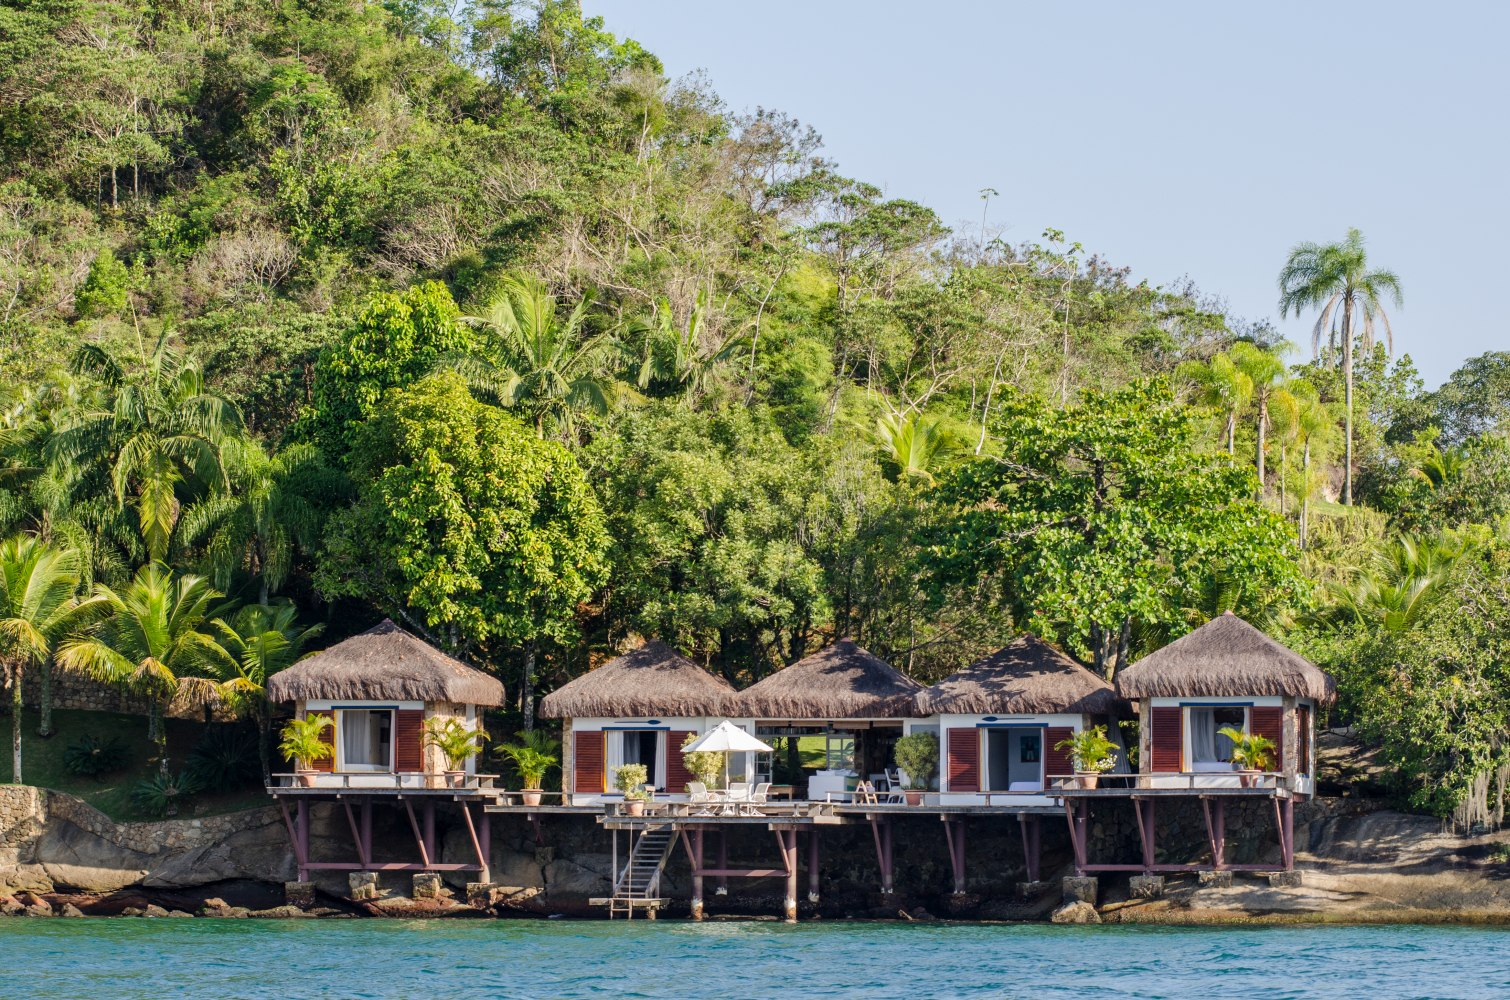 Private Islands For Sale Man 225 Island Brazil South